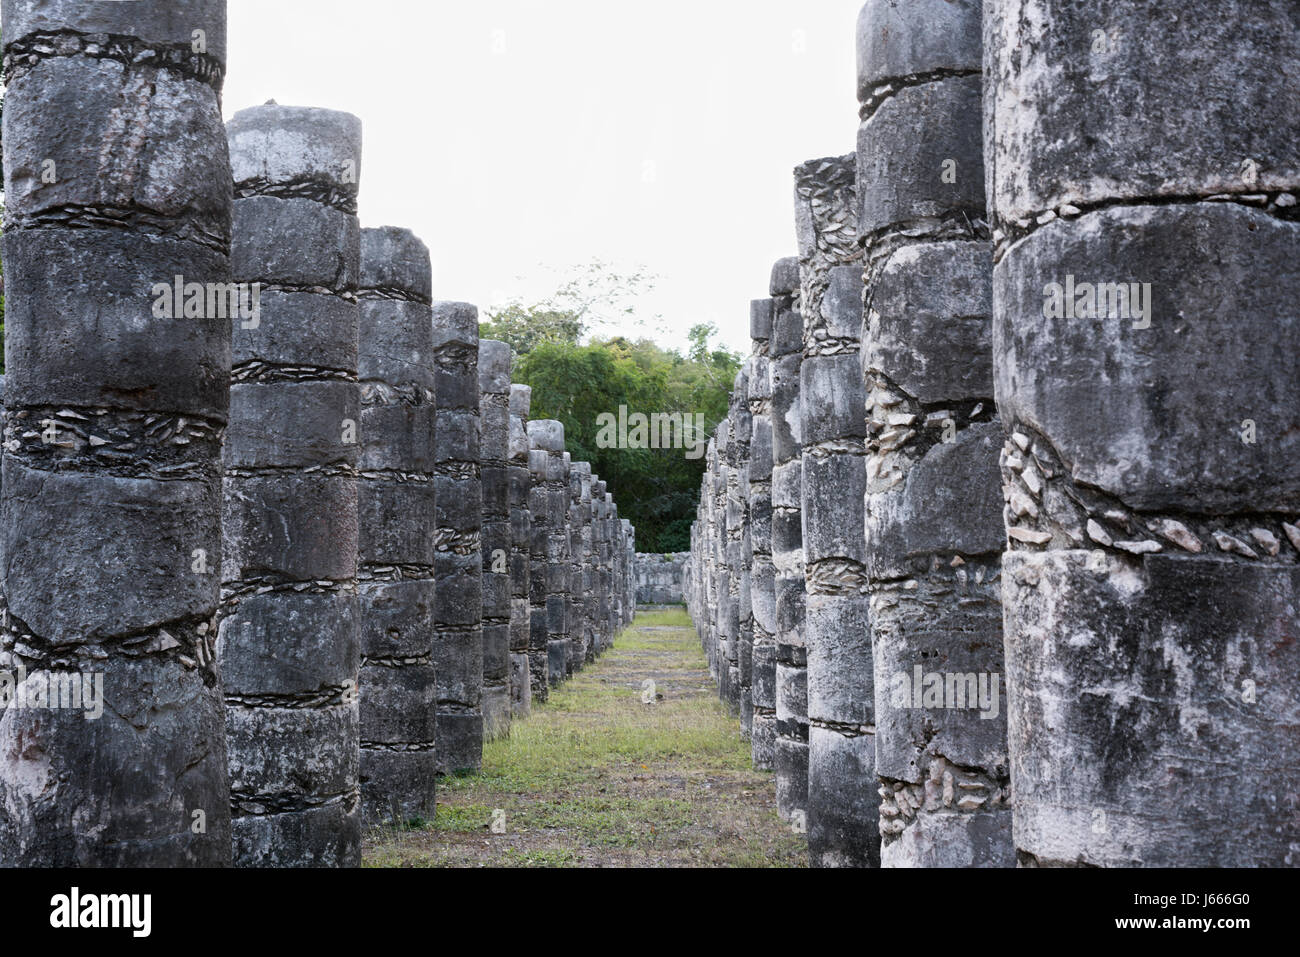 Columns in the Temple of a Thousand Warriors in Chichen Itza ruins, Maya civilization, Mexico - Stock Image